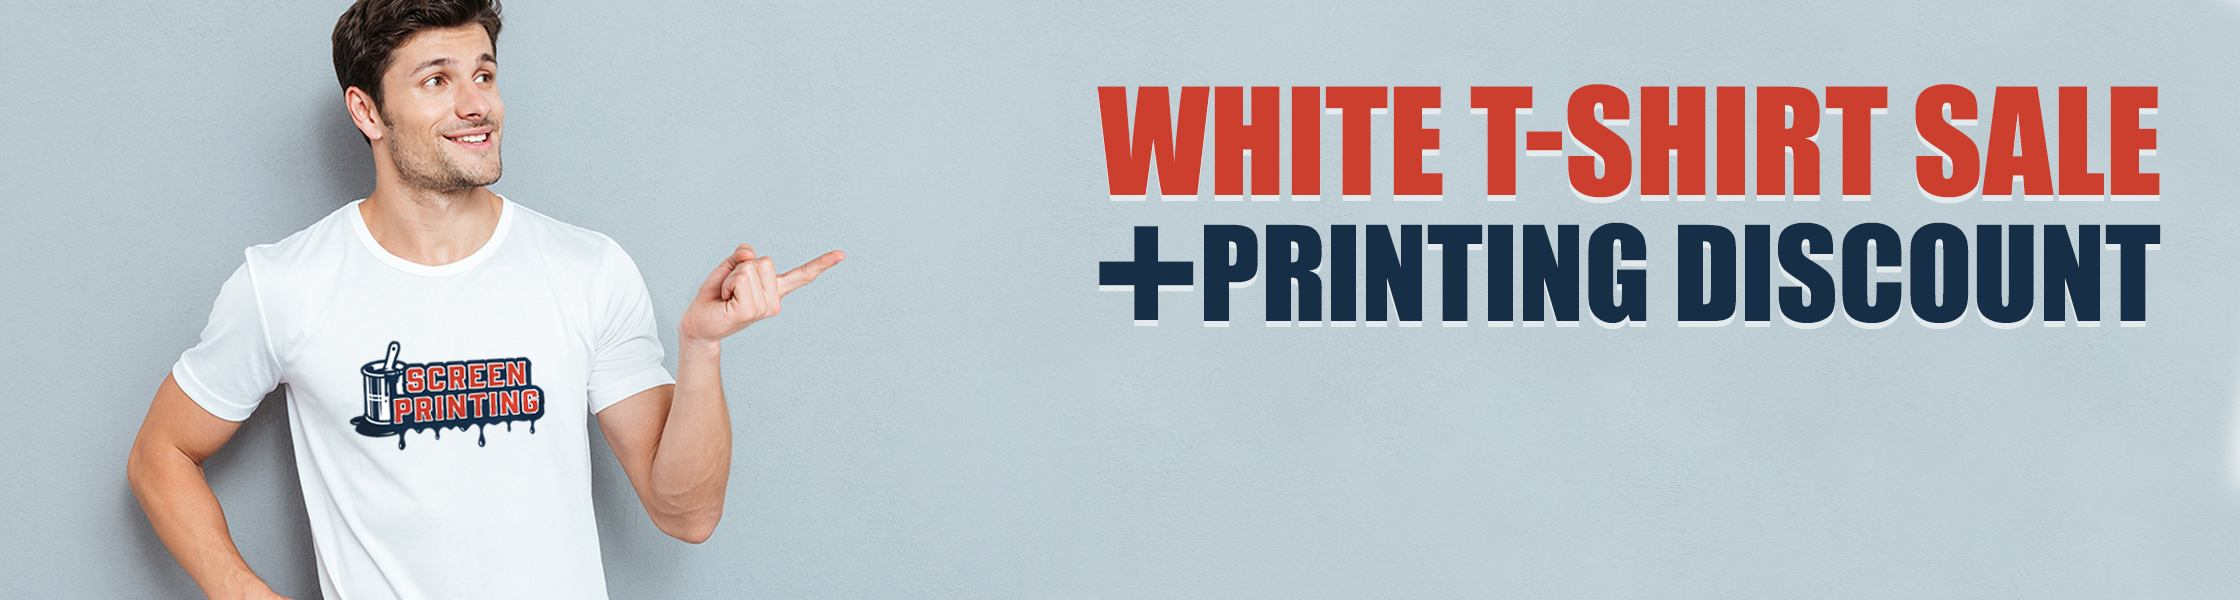 White T-shirts sale with printing discount coupon